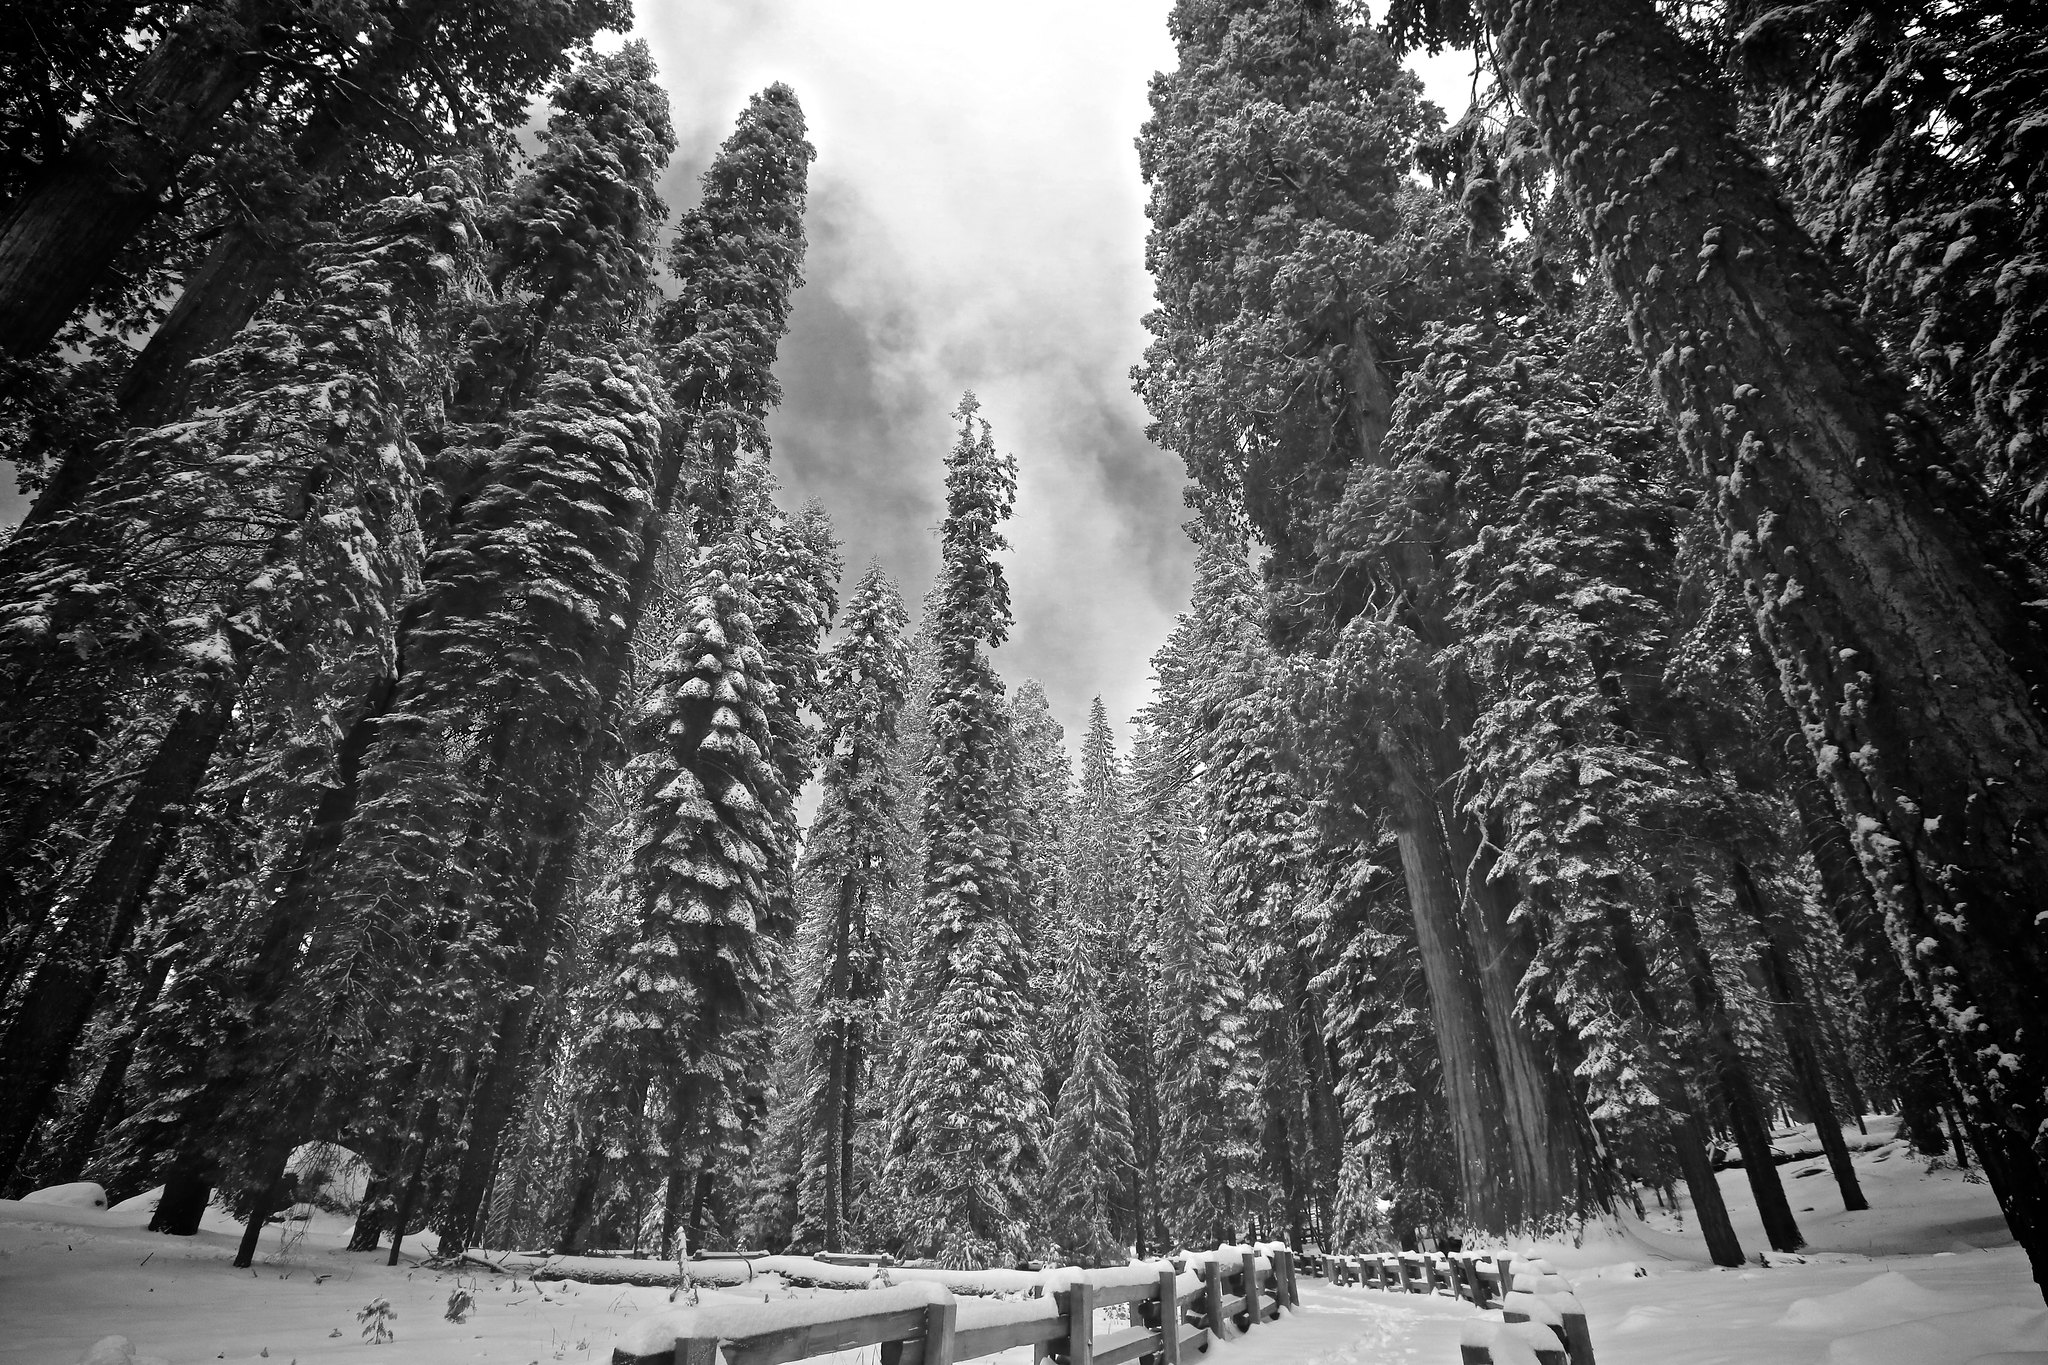 national parks perfect for winter hiking trips - sequoia national park PC Stefan Barycki via Flickr